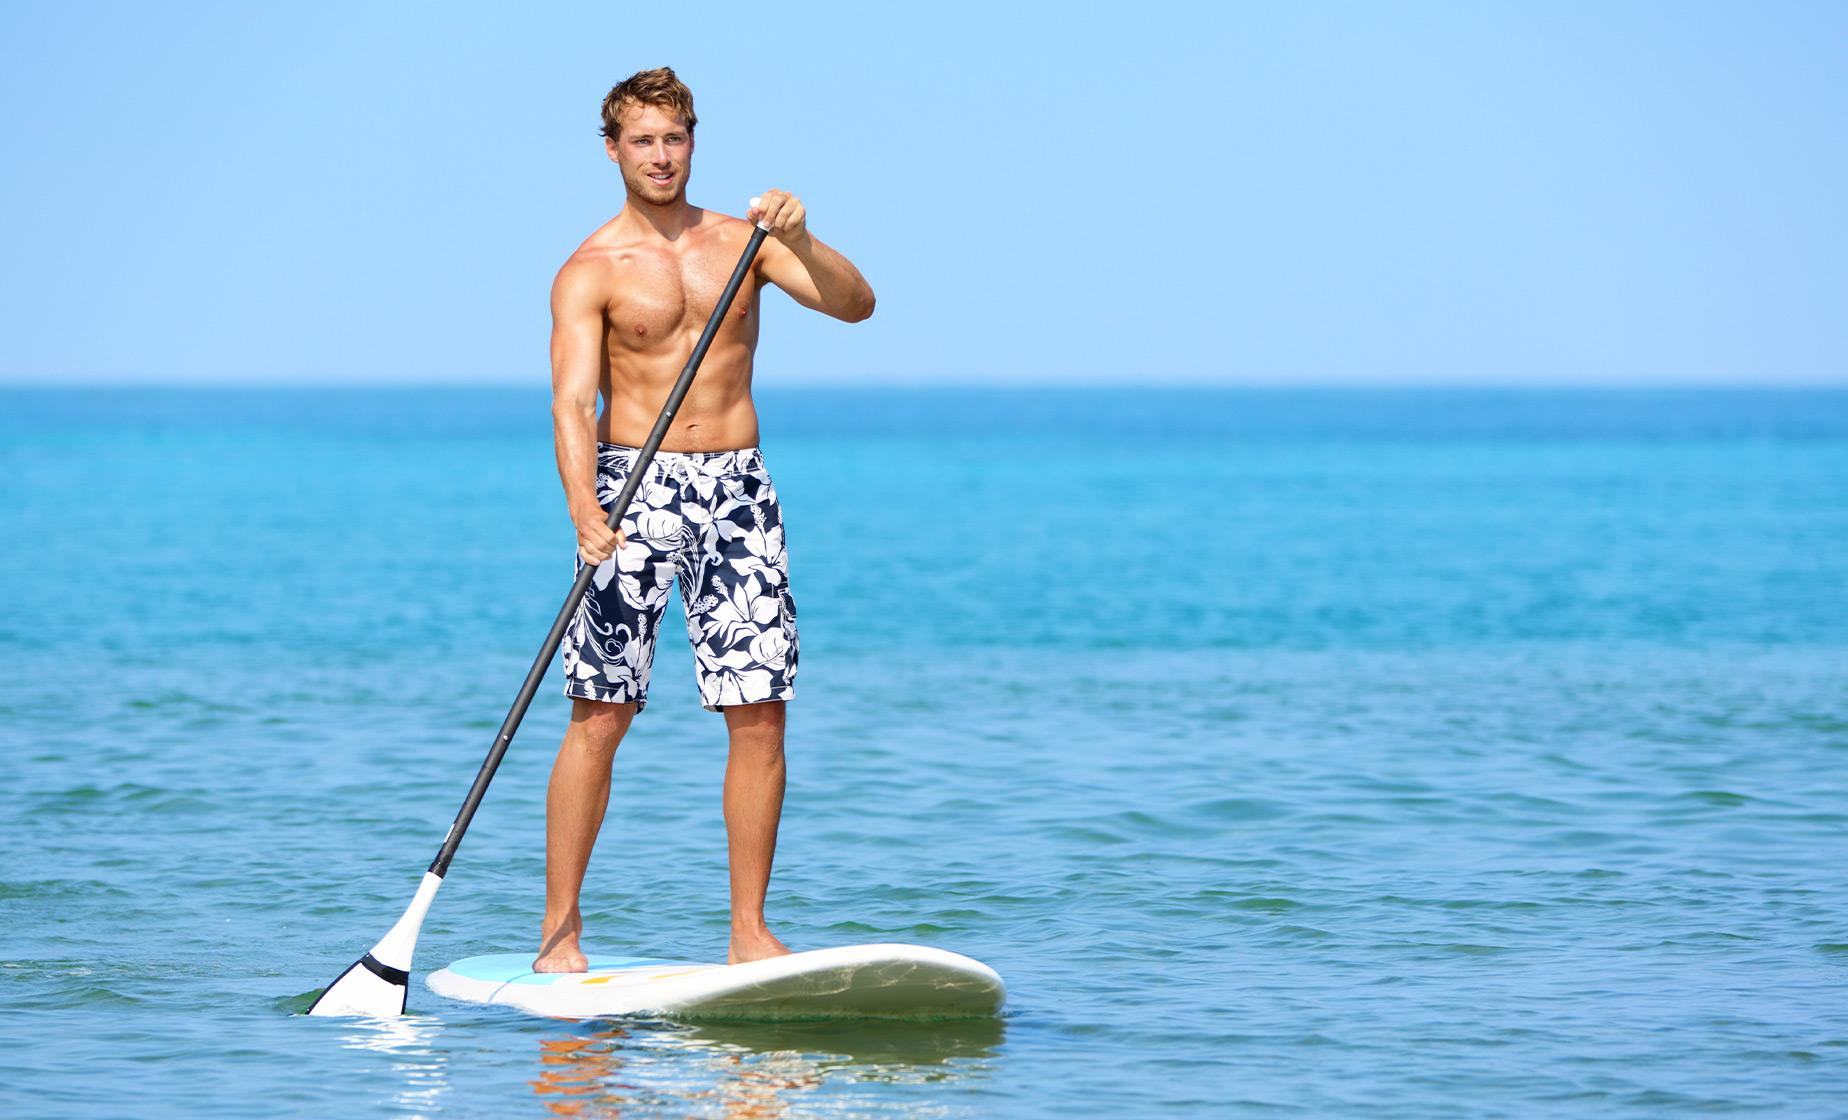 Stand Up Paddle Board Experience from Santa Barbara | Coastal Stand Up Paddle Board Lesson